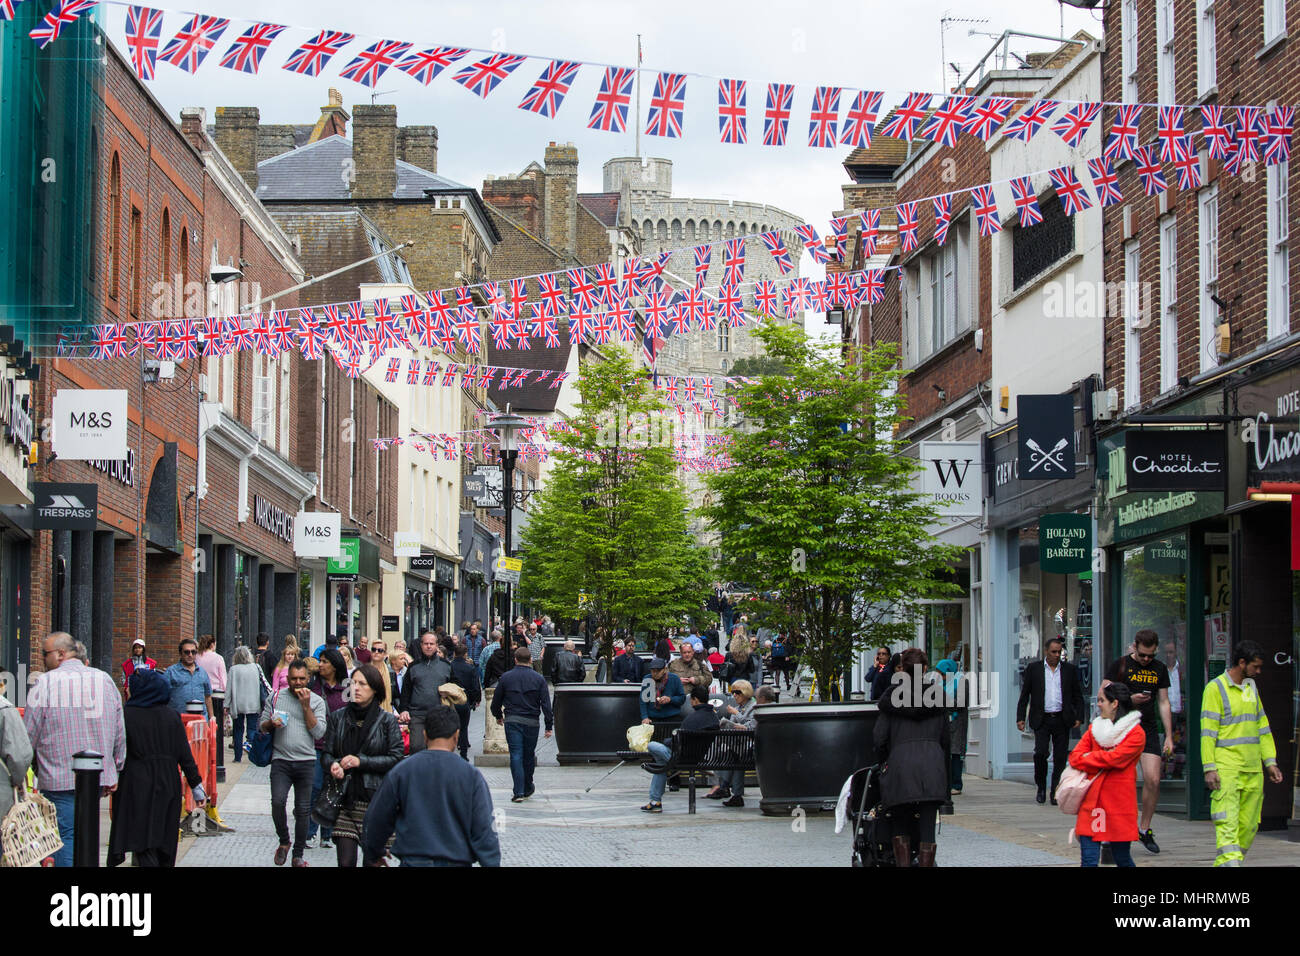 Windsor, UK. 3rd May, 2018. Union Jacks displayed in Windsor town centre in advance of the wedding of Prince Harry and Meghan Markle. Credit: Mark Kerrison/Alamy Live News Stock Photo